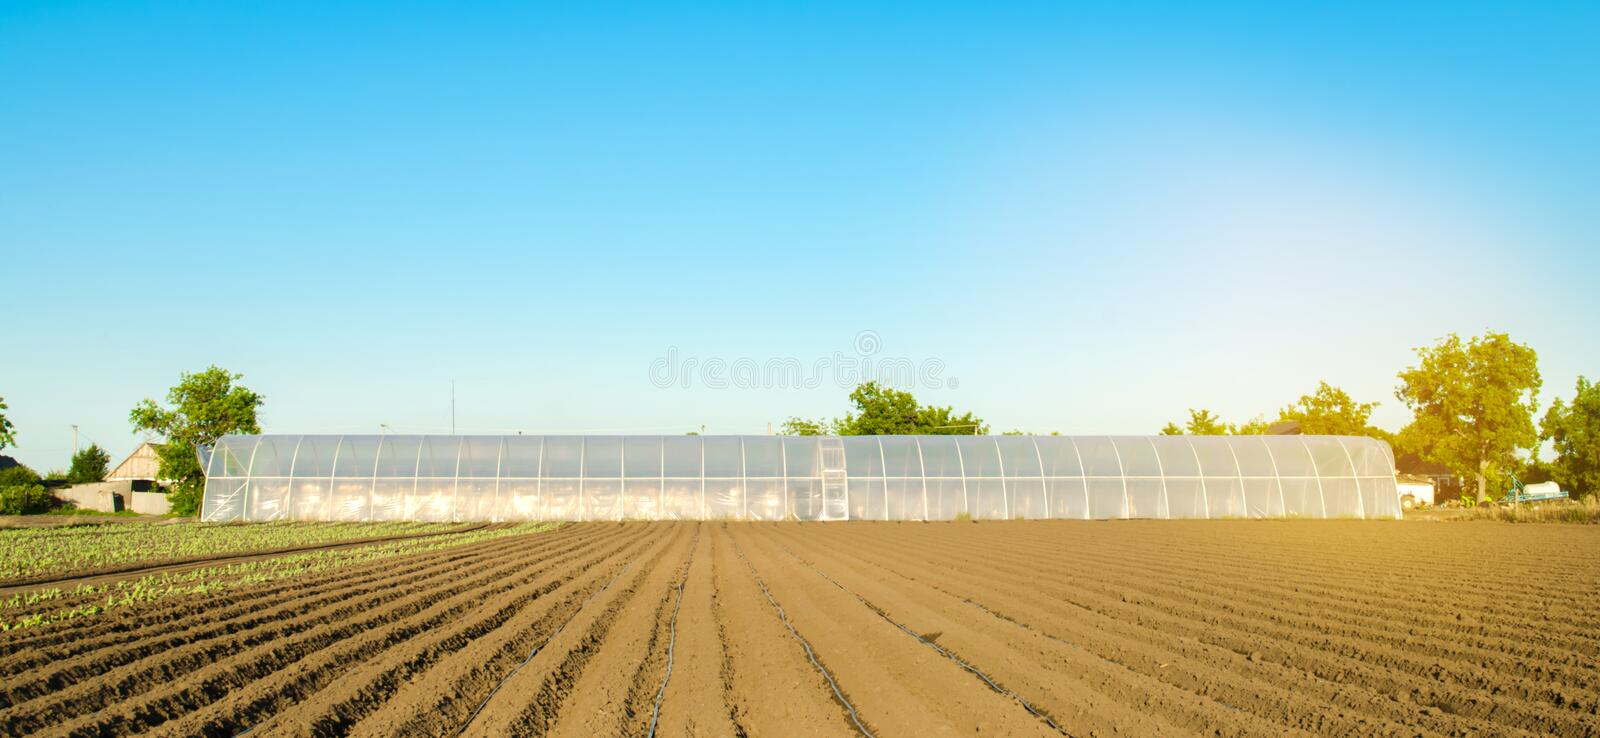 Greenhouses for growing vegetables and fruits in the field. Farming Agriculture Farmland. Agro-industrial complex. Lending to. Farmers. Selective focus royalty free stock photo